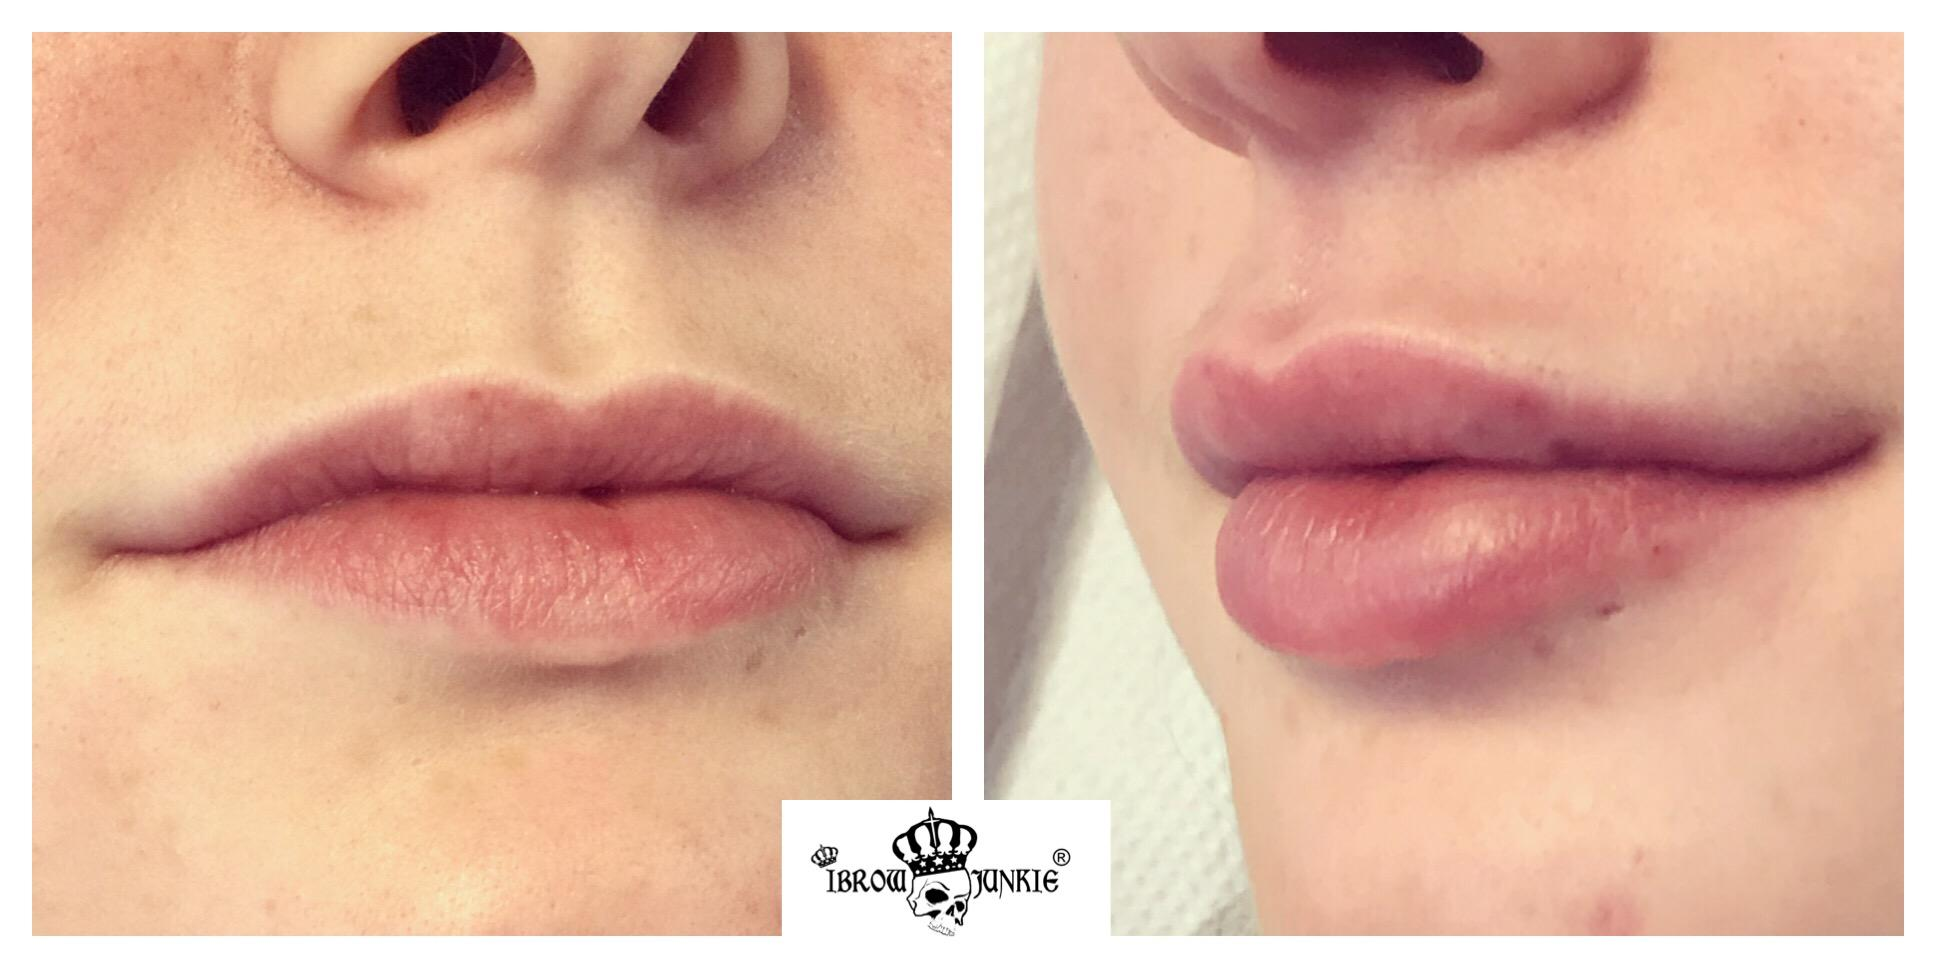 Lip Filler Before After Newcastle Lip Fillers Kay Mac Dobson iBrow Junkie